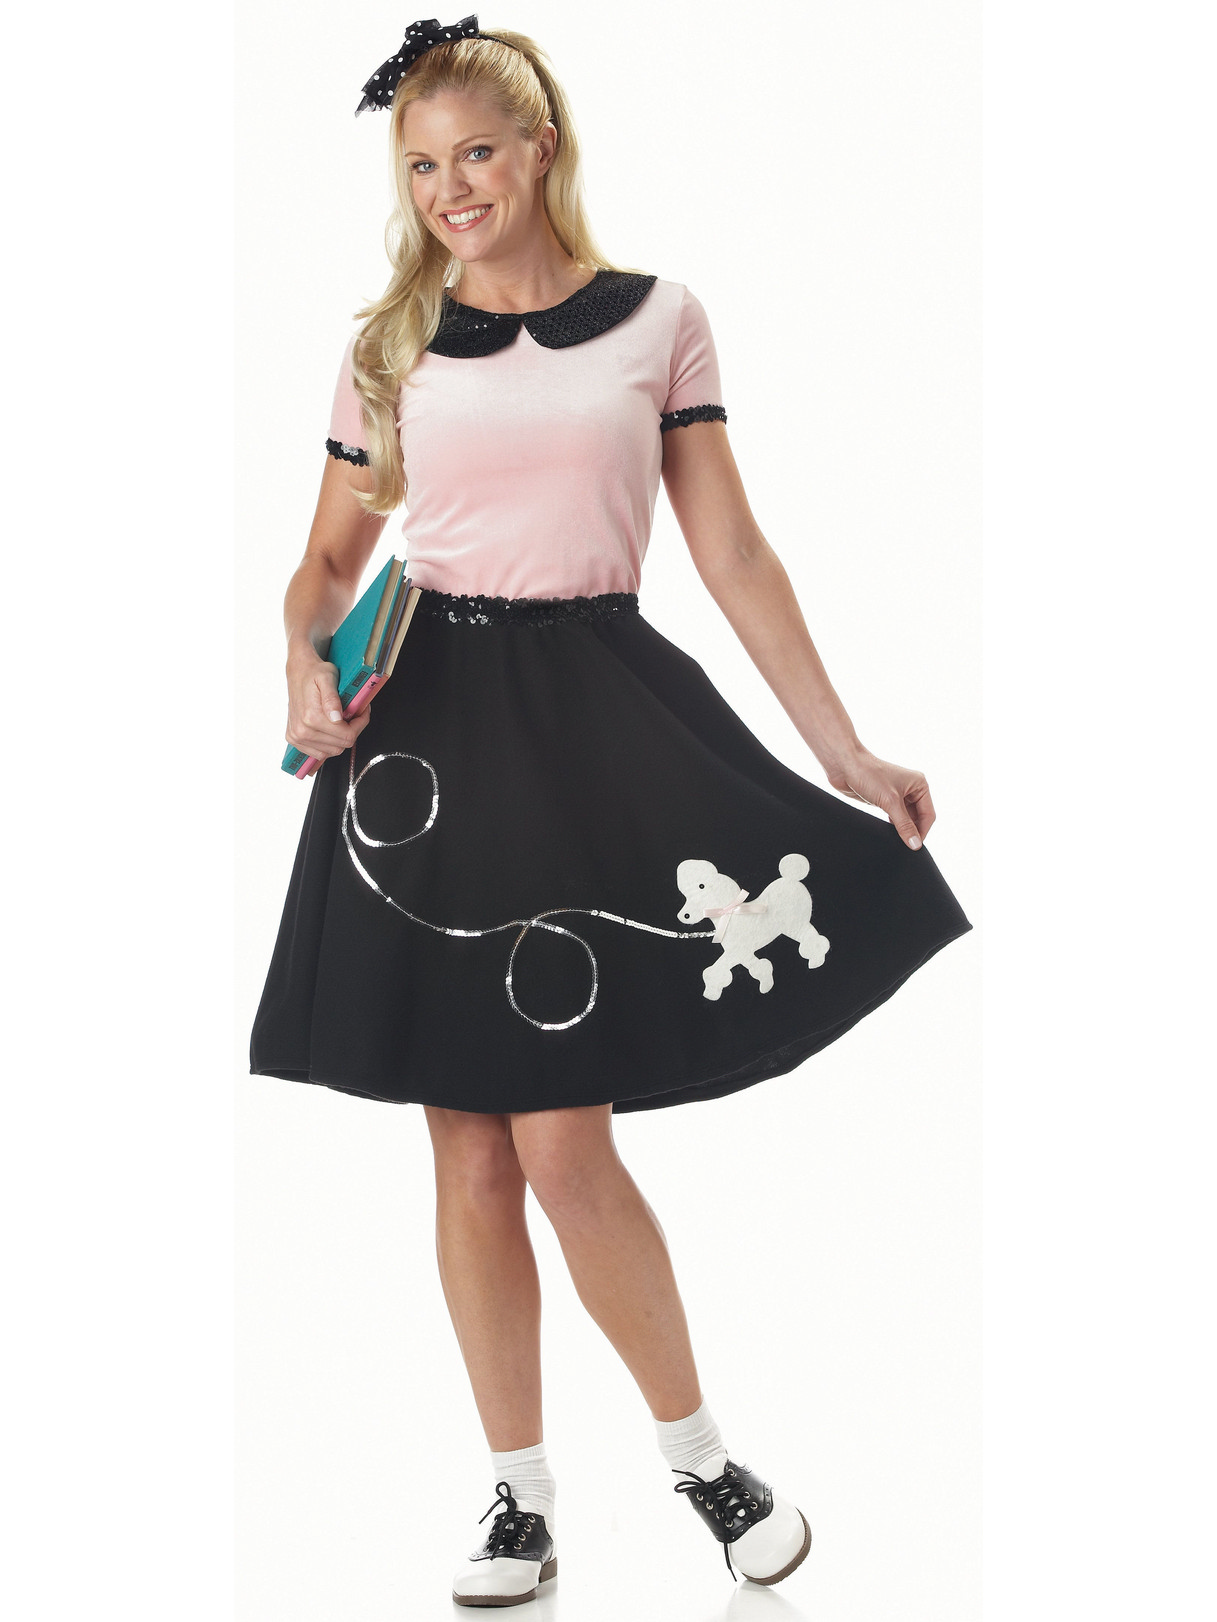 50s Hop with Poodle Skirt Togs for Women